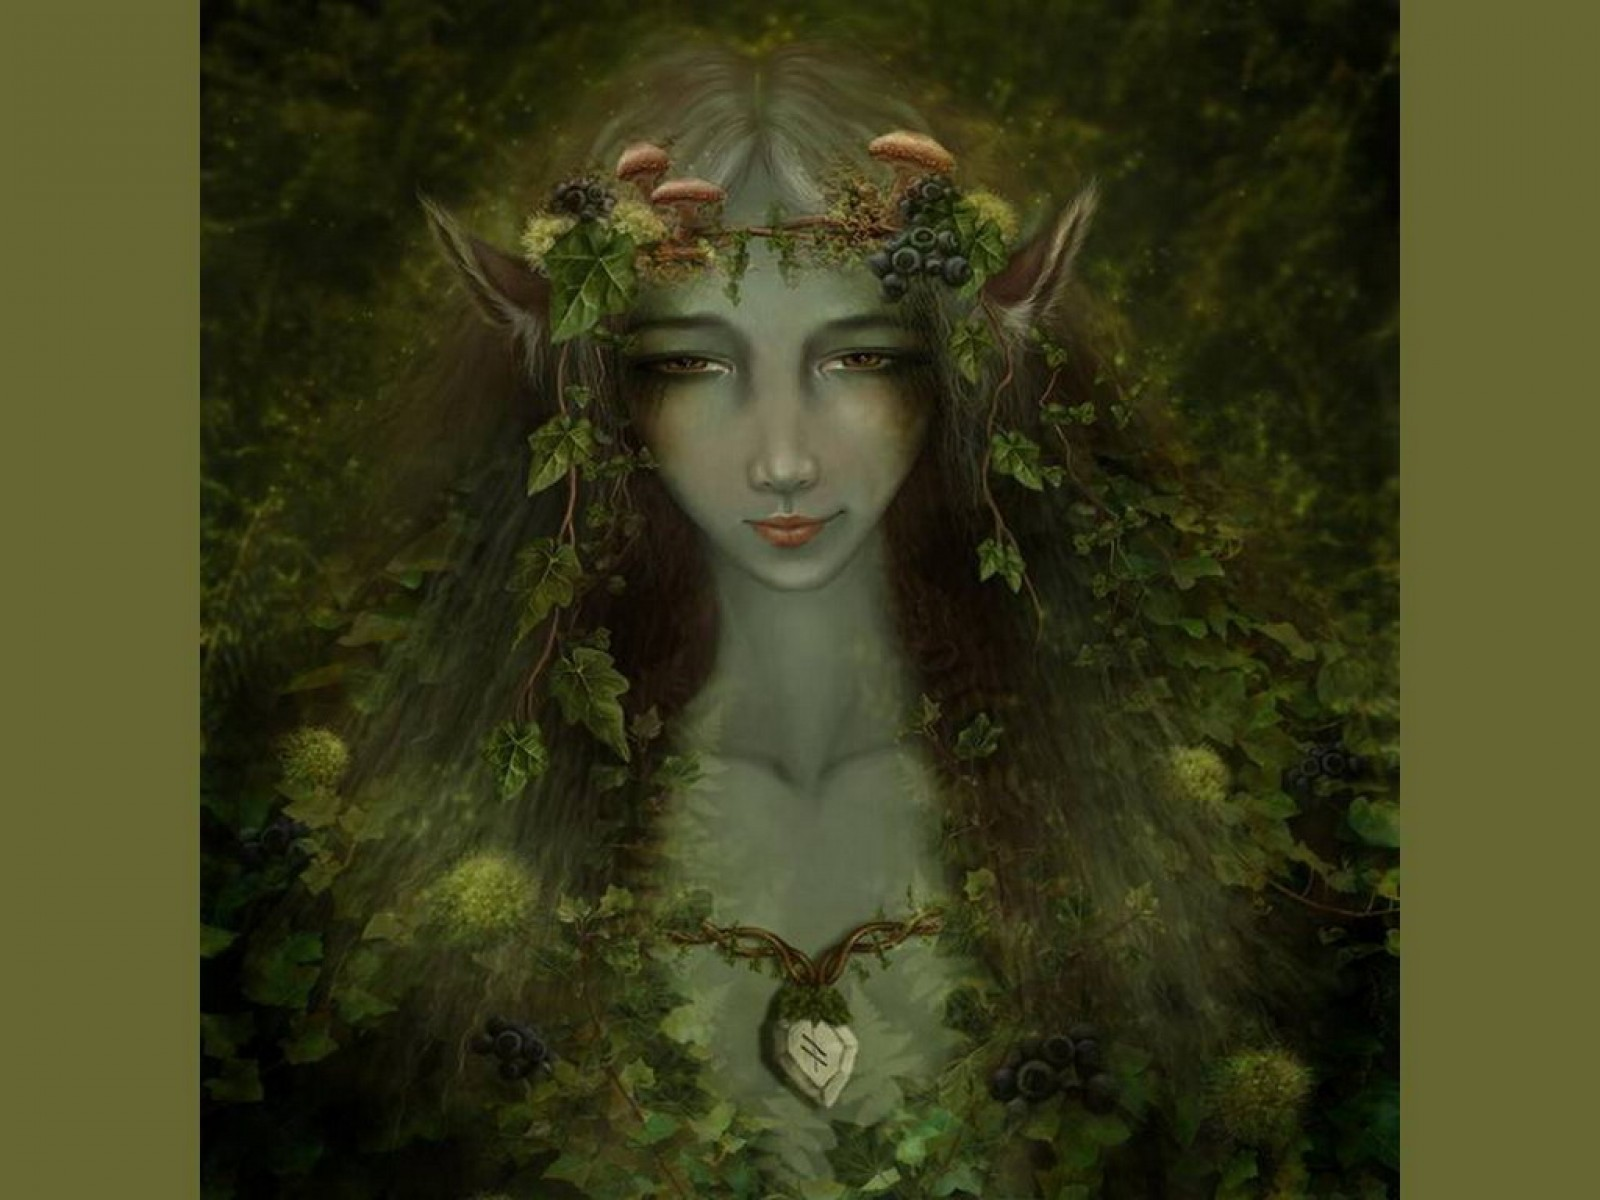 Green Elven Goddess